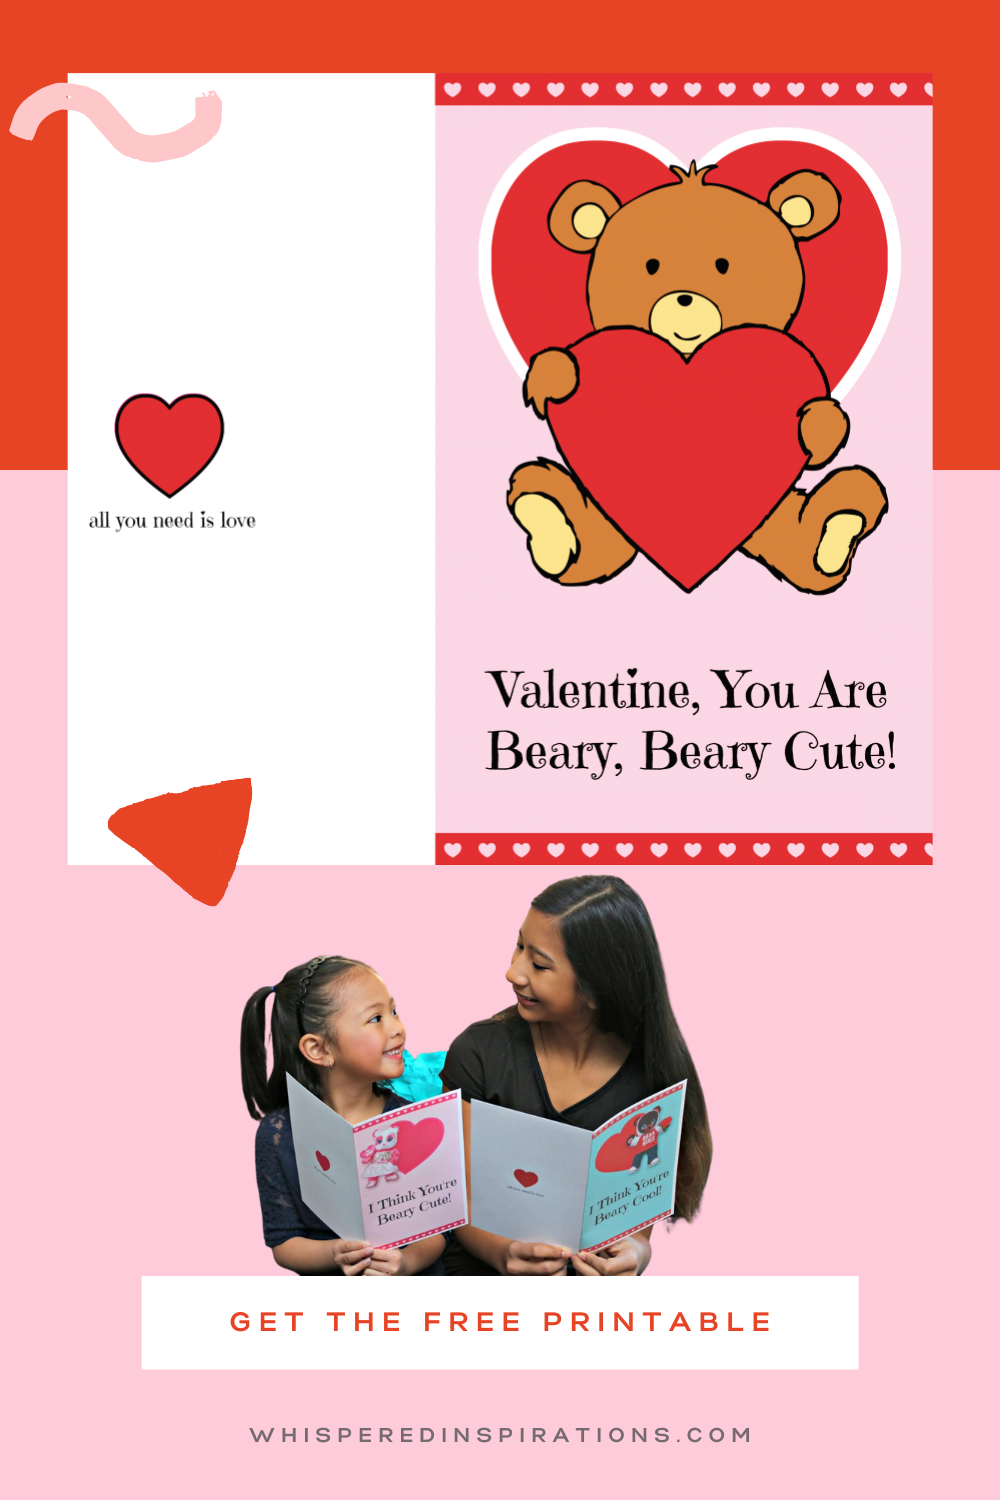 Celebrate Valentine's Day with Build-A-Bear & these FREE Valentine's Day Card Printable. It's the day for love and friendship! This is a simple and cute Valentine's Day Card that can be fully customized inside. Quick, easy, and perfect for when you forget Valentine's Day or when you want to make handmade Valentine's Day cards.